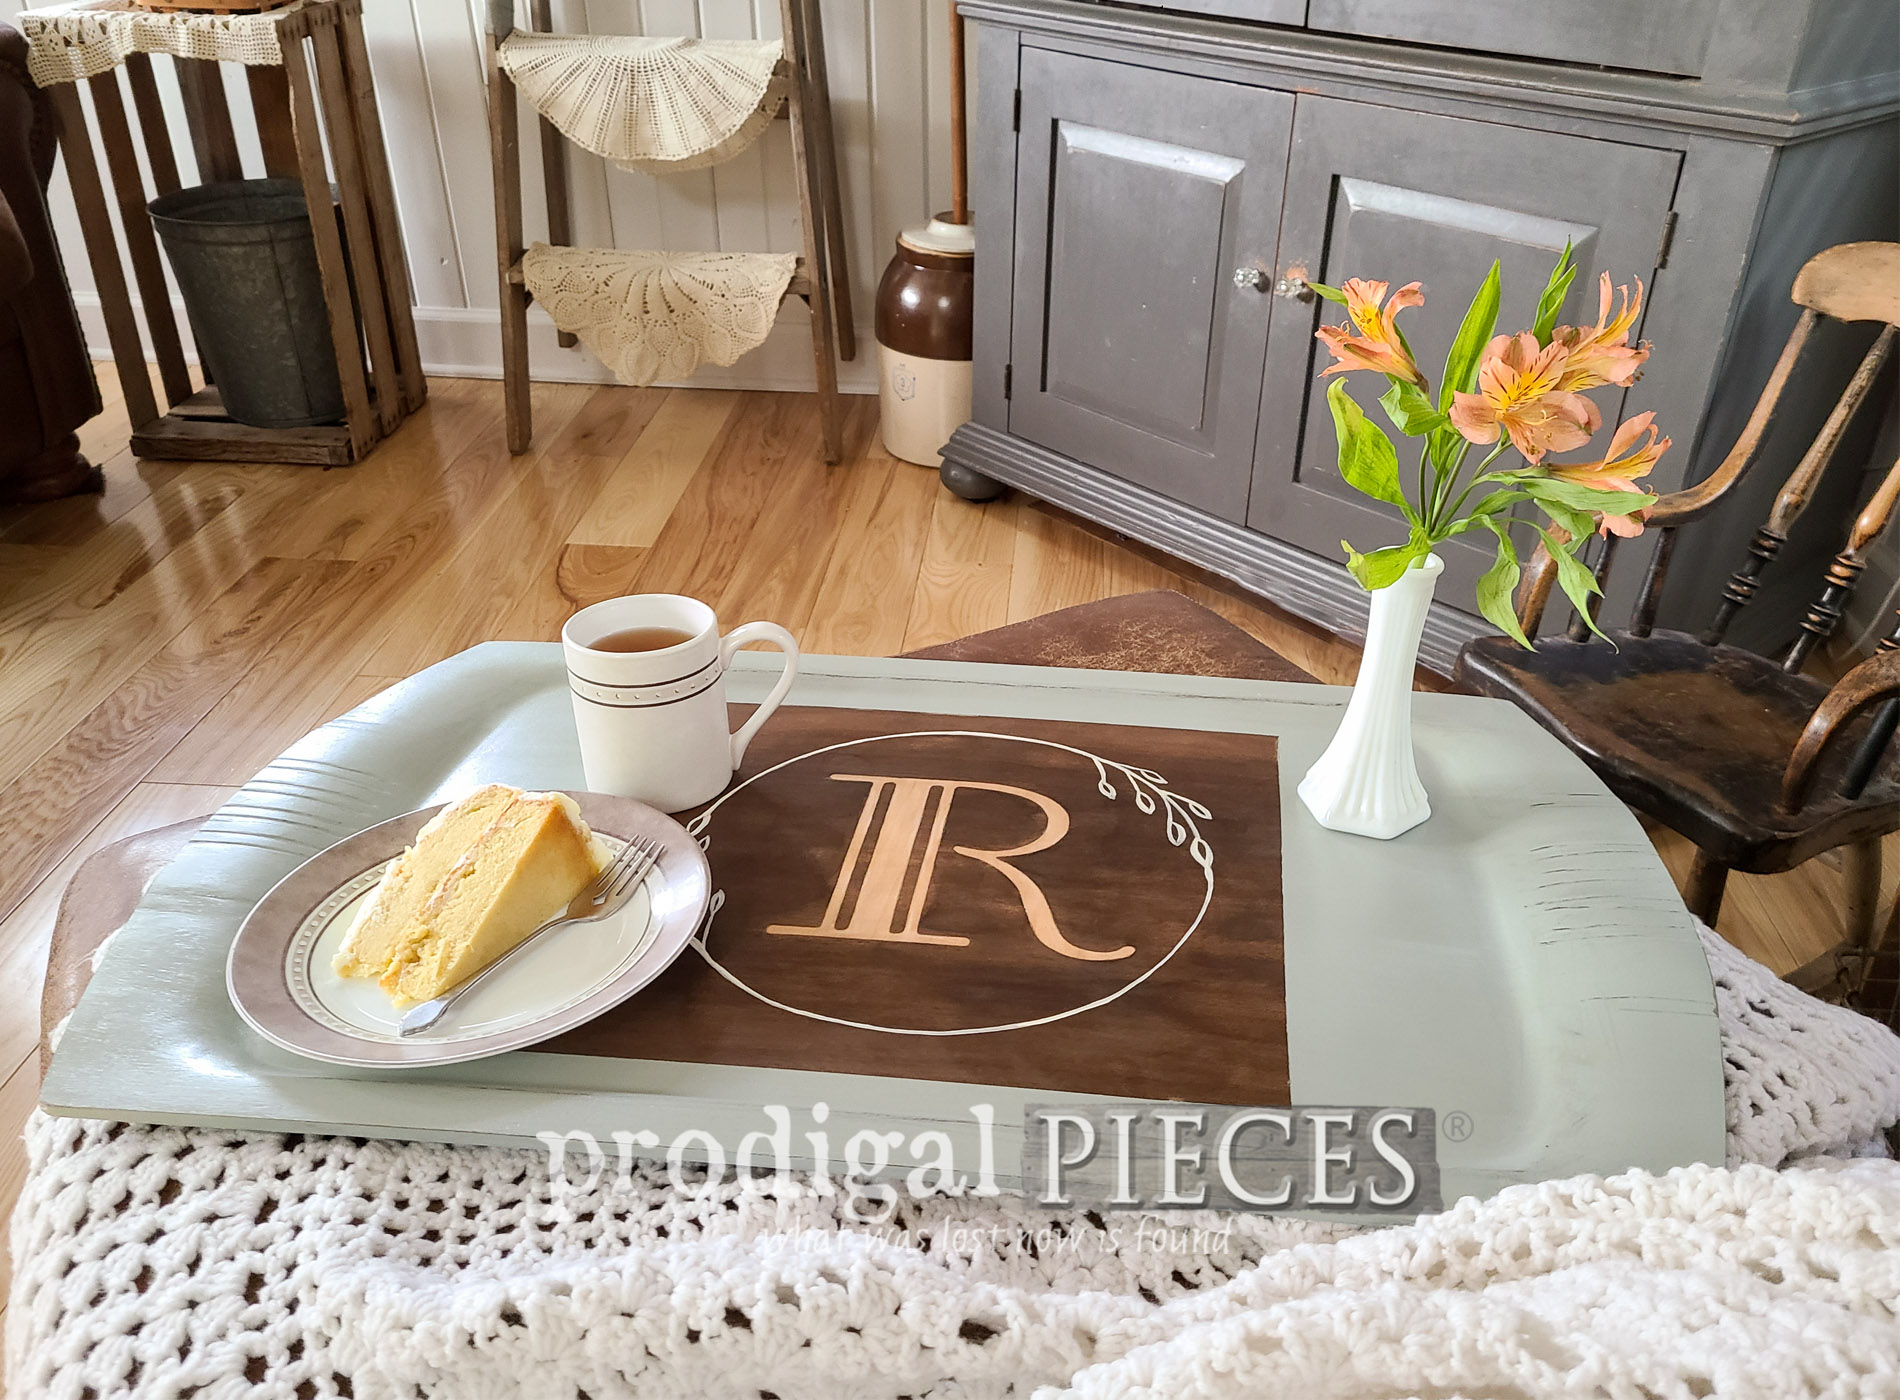 Featured Vintage Wooden Tray with Modern Farmhouse Style by Larissa of Prodigal Pieces | prodigalpieces.com #prodigalpieces #home #homedecor #diy #farmhouse